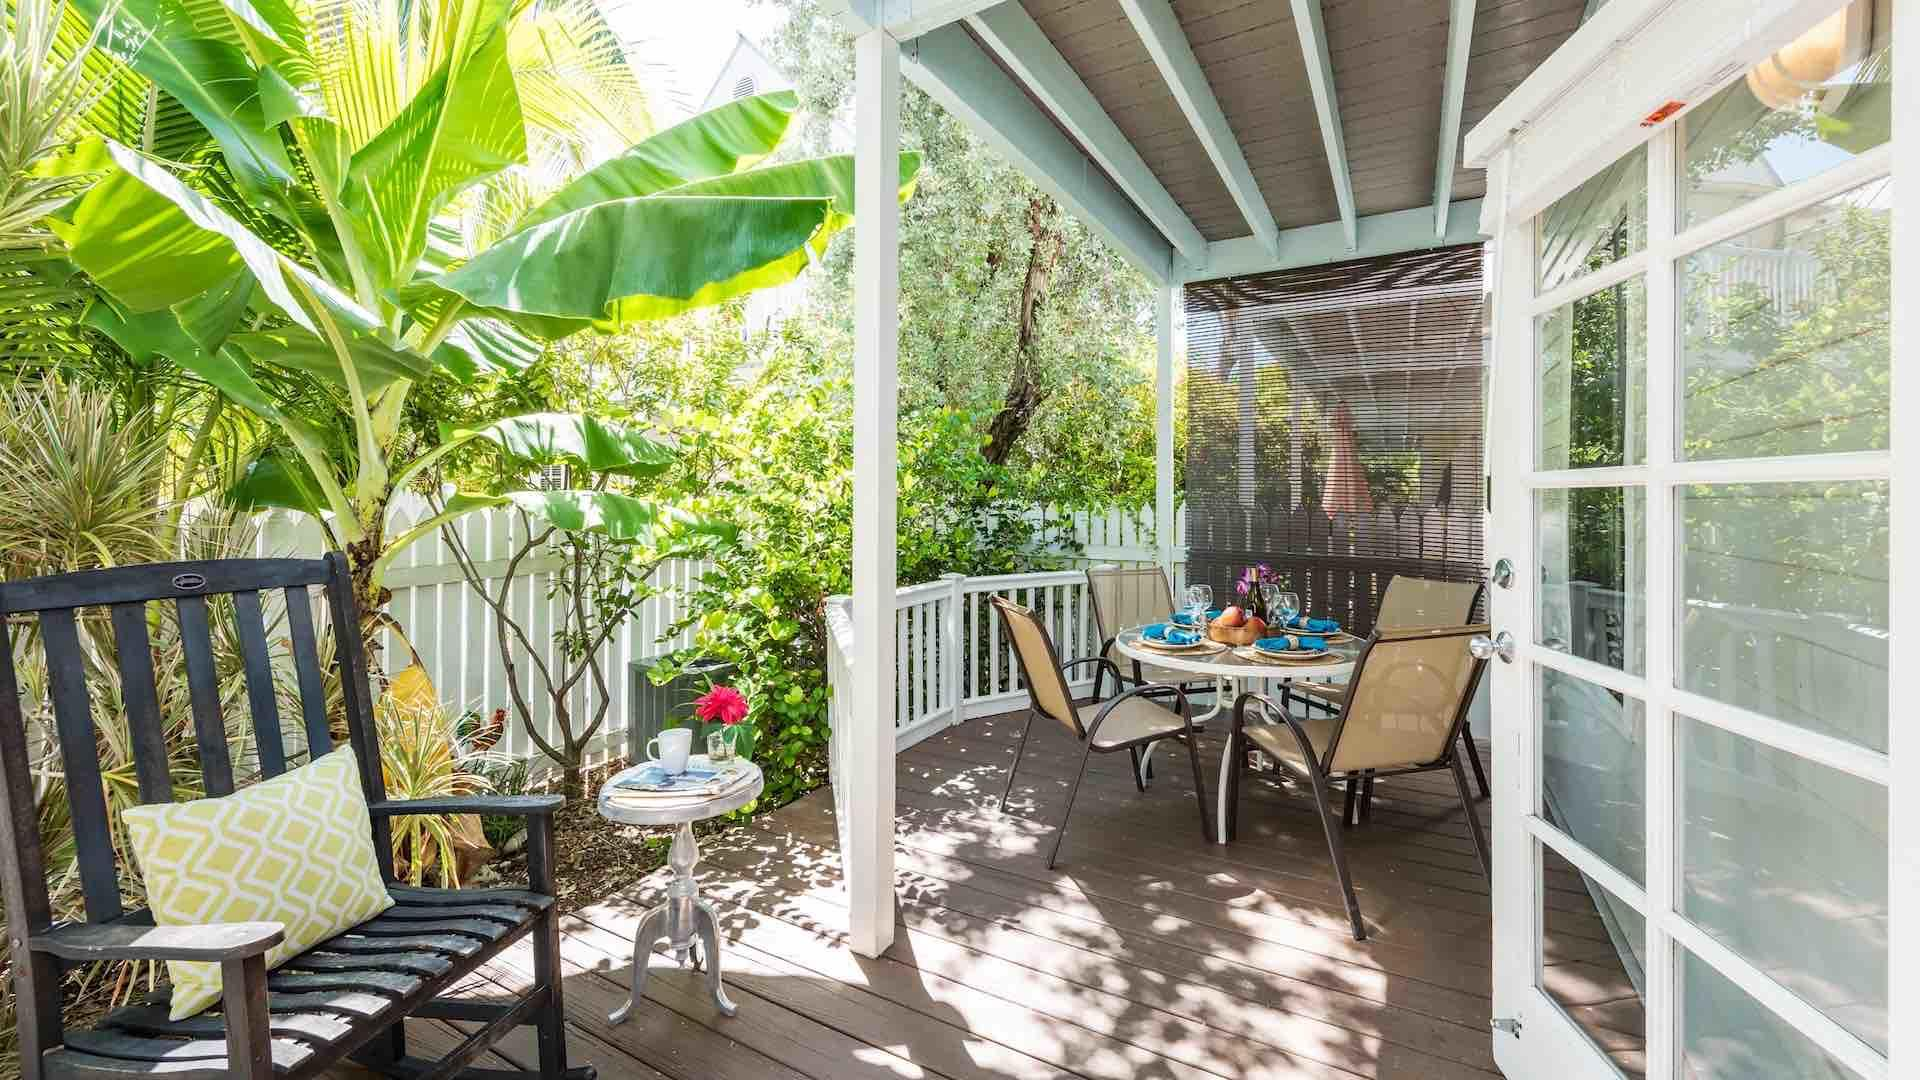 The back patio and deck are completely private and surrounded by lush foliage...